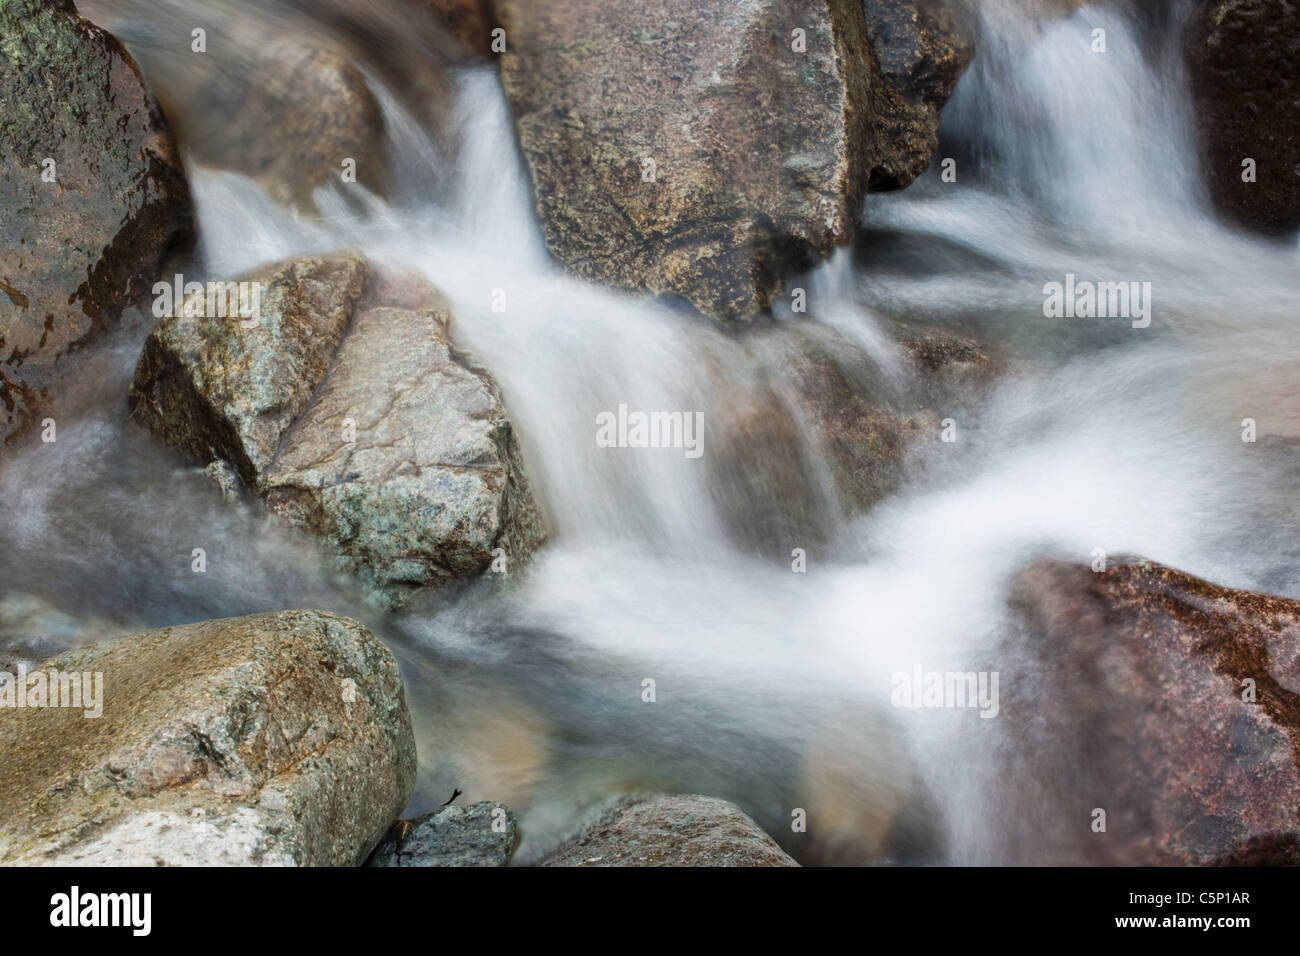 Water flowing over rocks - Stock Image